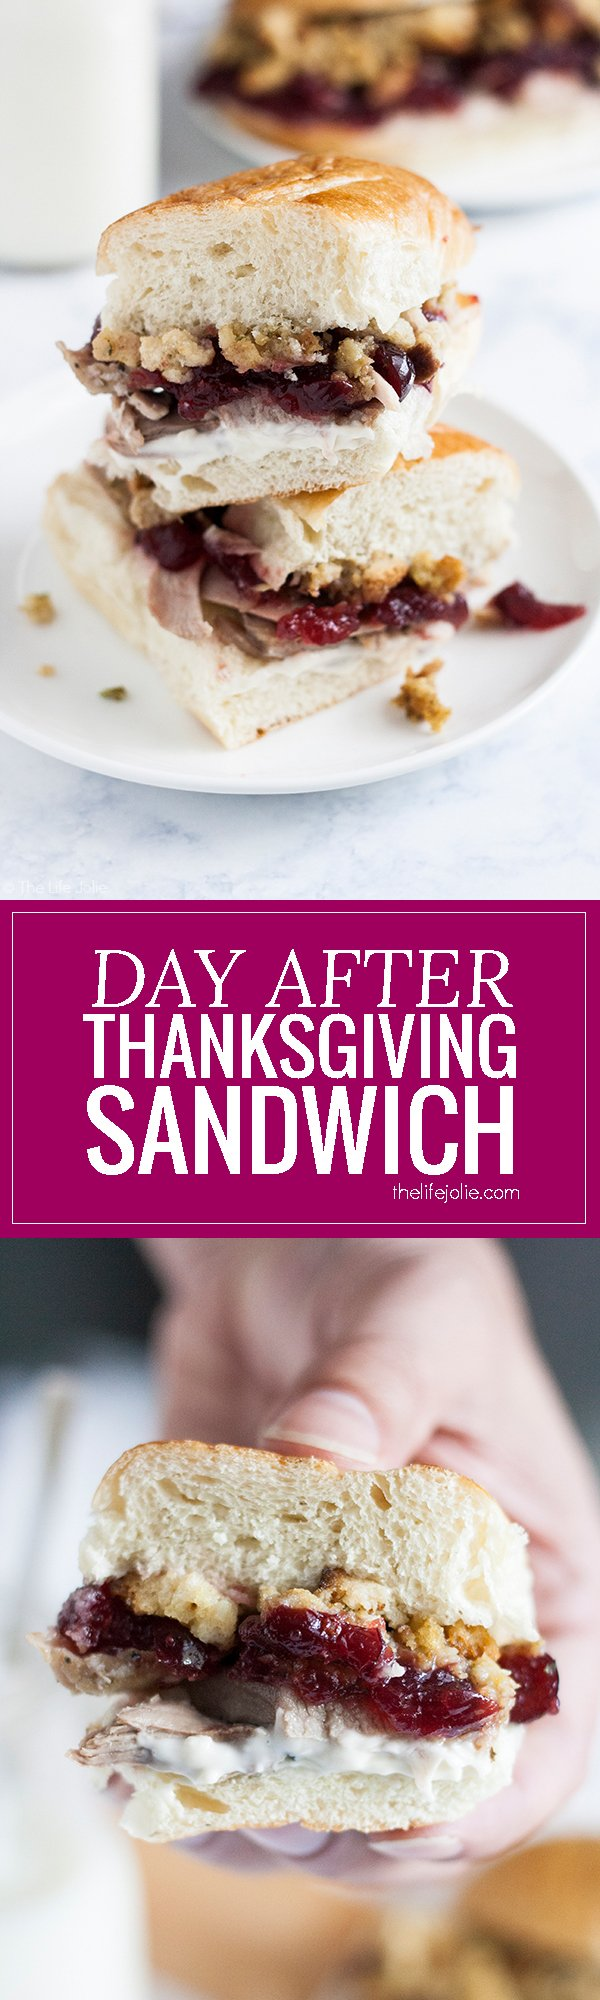 This Day After Thanksgiving Sandwich is one of my favorite recipes to enjoy leftovers! Tender turkey, sandwiched between halves of your favorite bun with tangy cranberry sauce, savory stuffing and mayonnaise. I love enjoying this for lunches or dinners around the holidays!